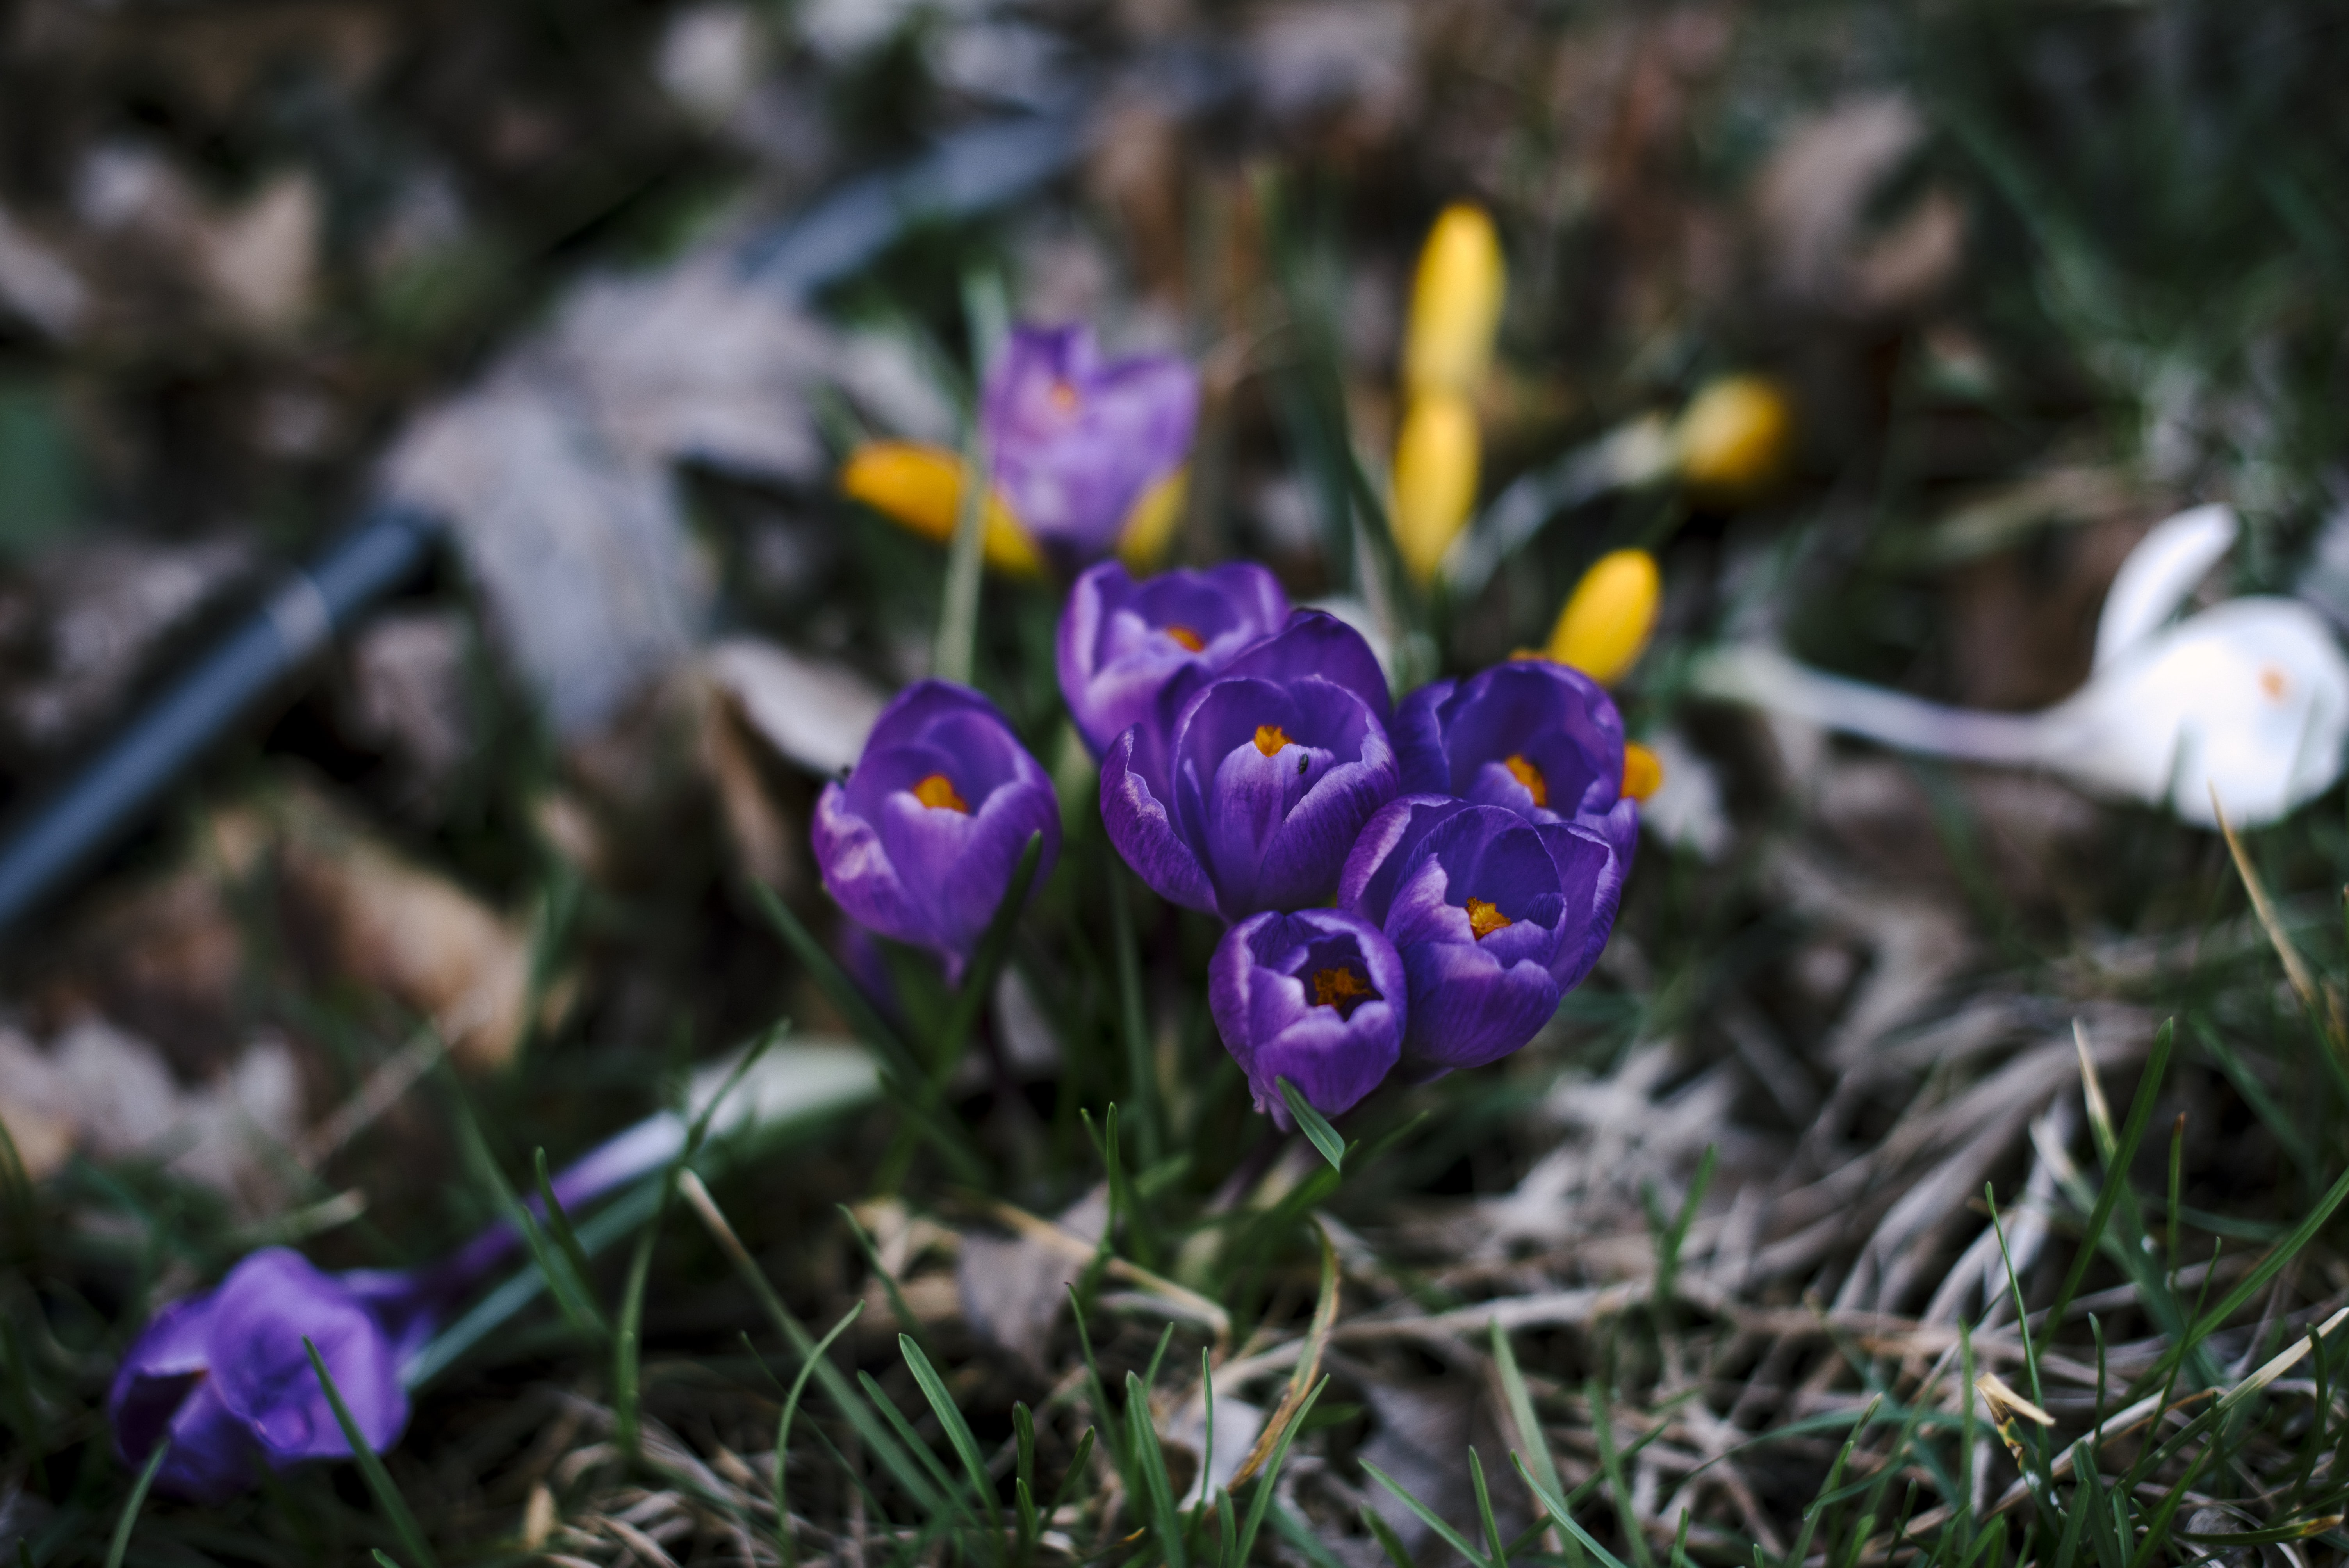 Small group of purple crocus flowers blooming in Spring with grass